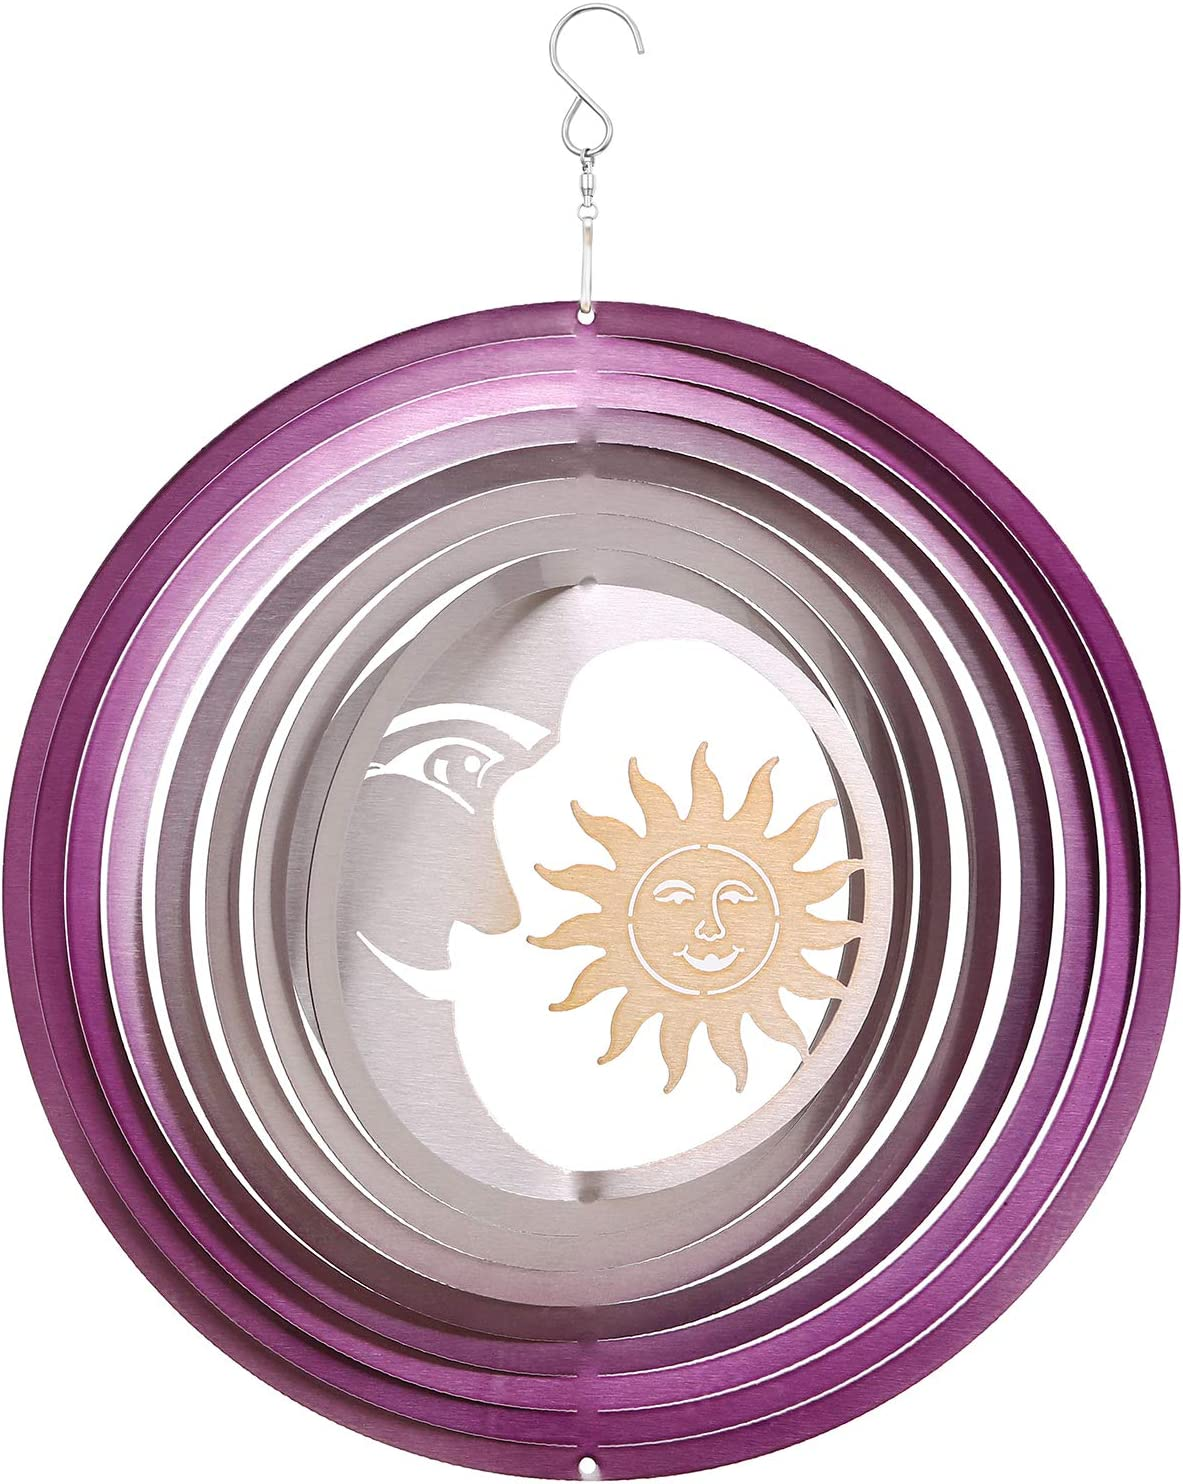 Wind Spinners Outdoor Metal Large,Sun Moon Spinner Garden Decor,3D Kinetic Wind Spinners Hanging for Yard Patio,12inch Stainless Steel Spinner Art Ornaments,Purple Wind Sculptures & Spinners Presents